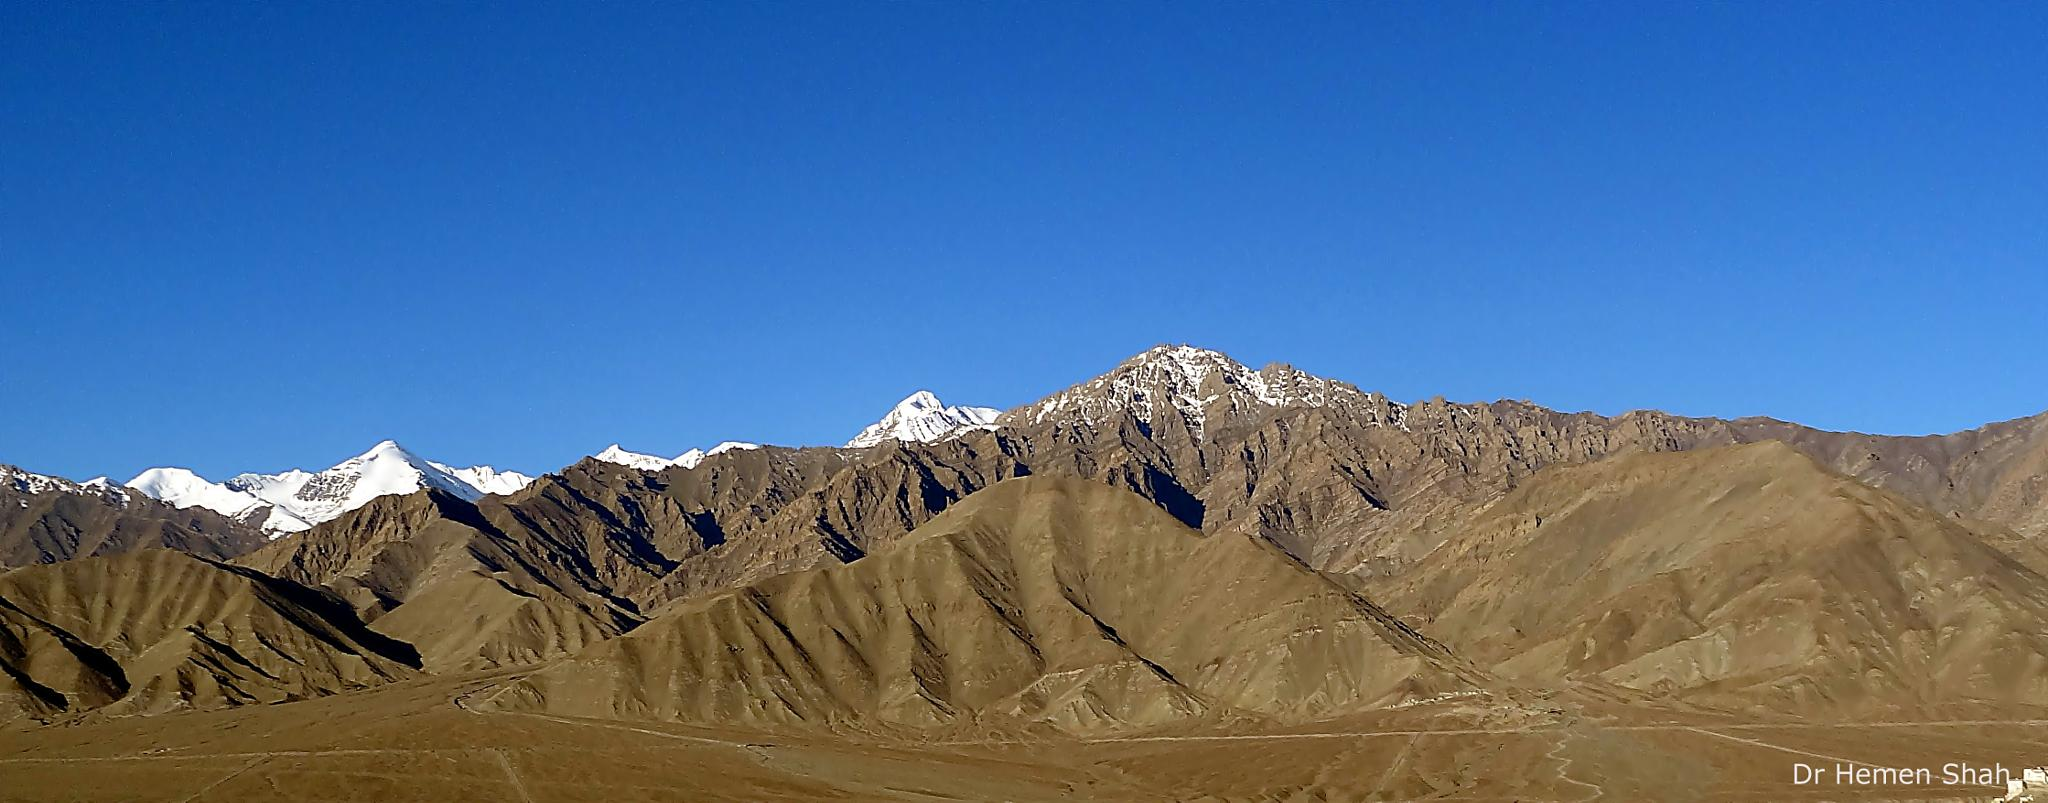 AWESOME BEAUTY OF LADAKH by Hemen